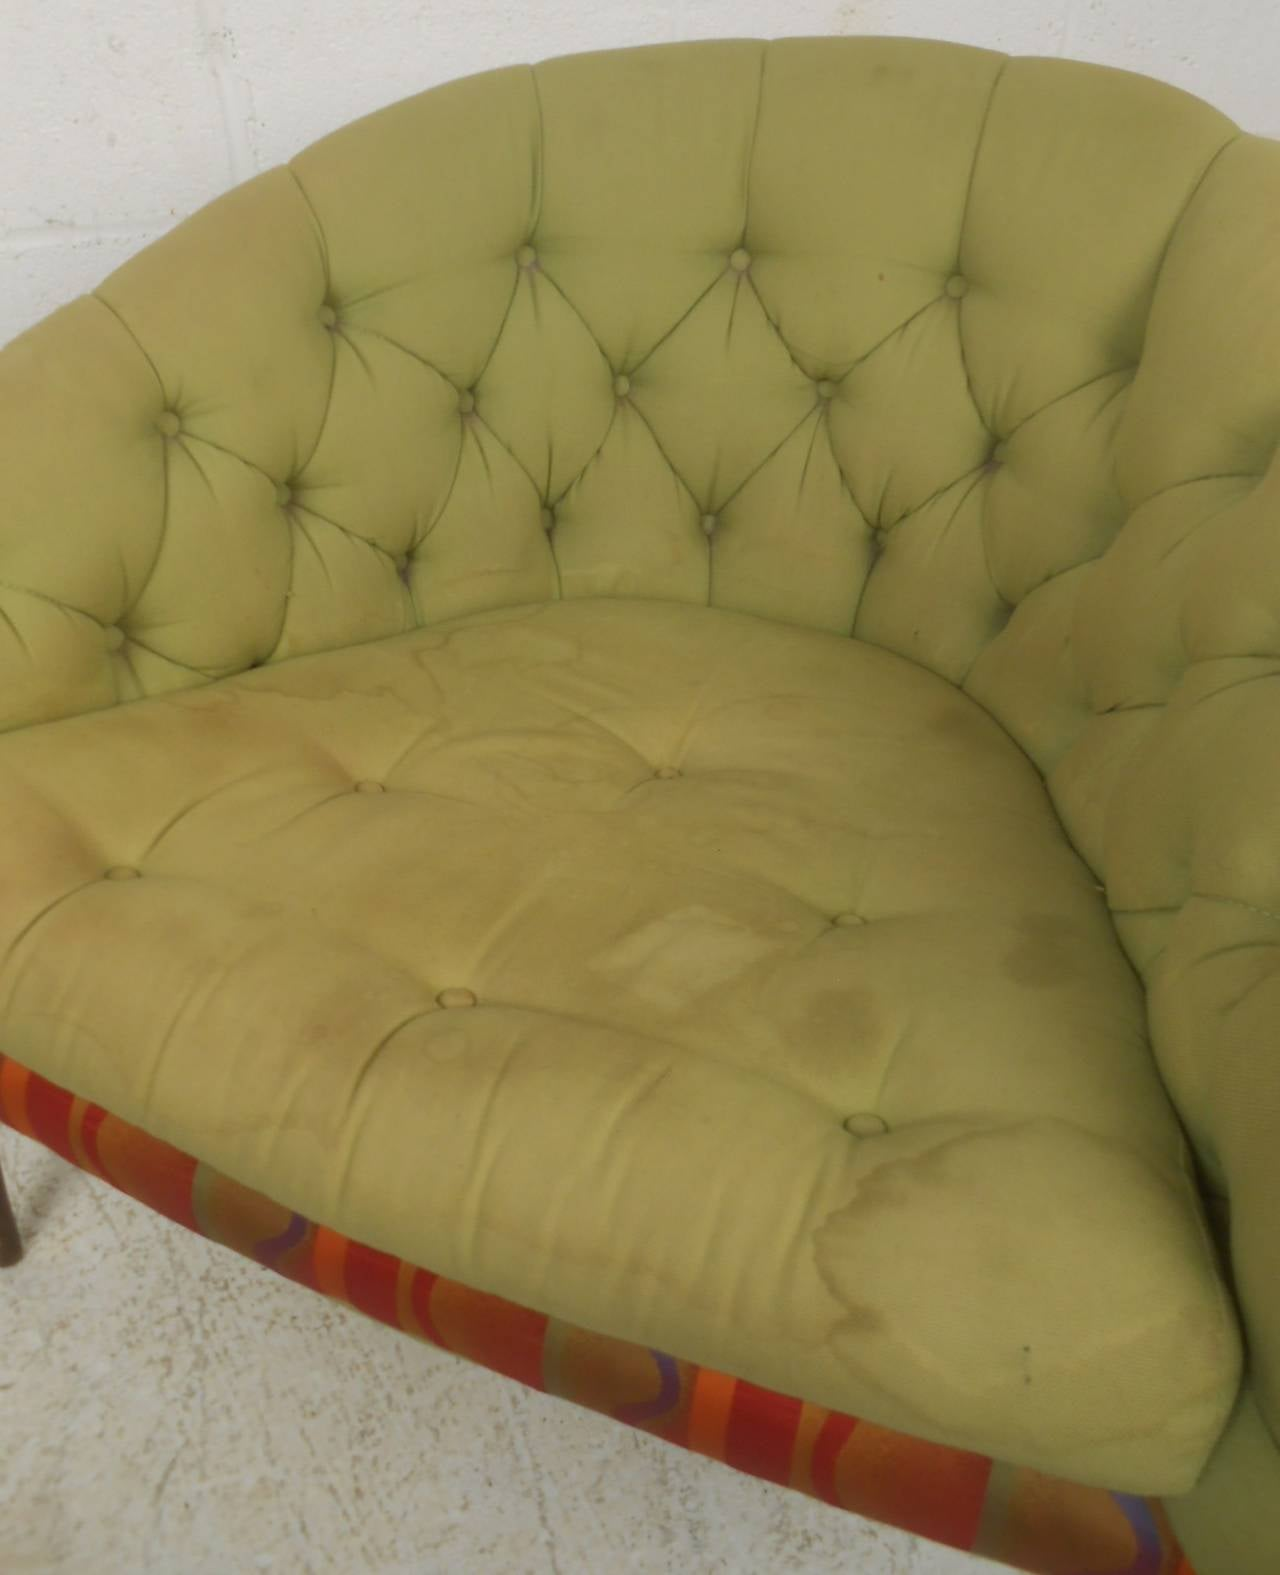 Stylish Mid-Century Modern Tufted Lounge Chair In Good Condition For Sale In Brooklyn, NY